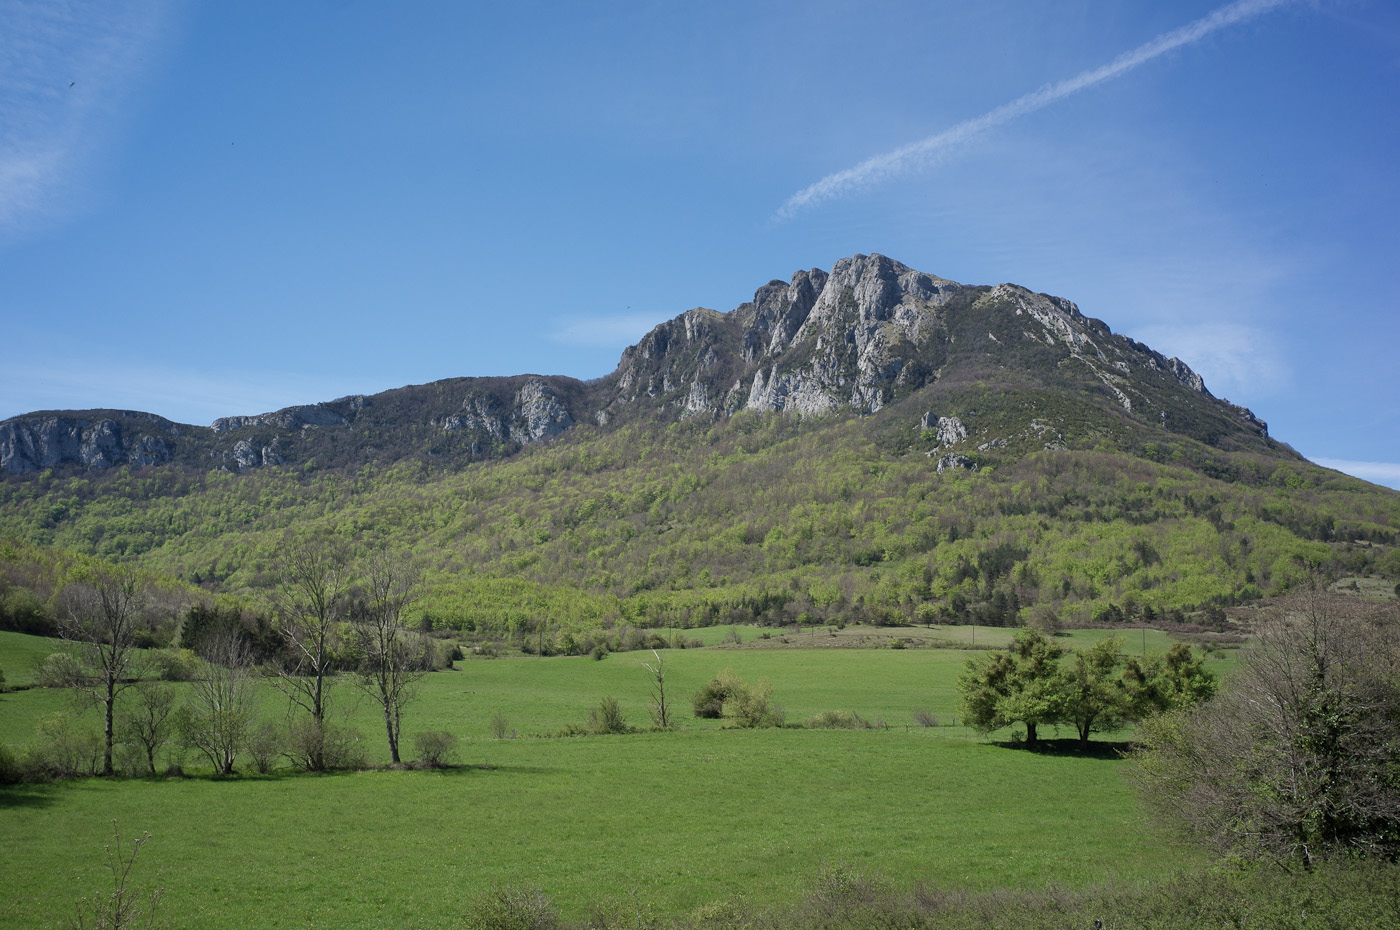 The green Valley of Bugarach